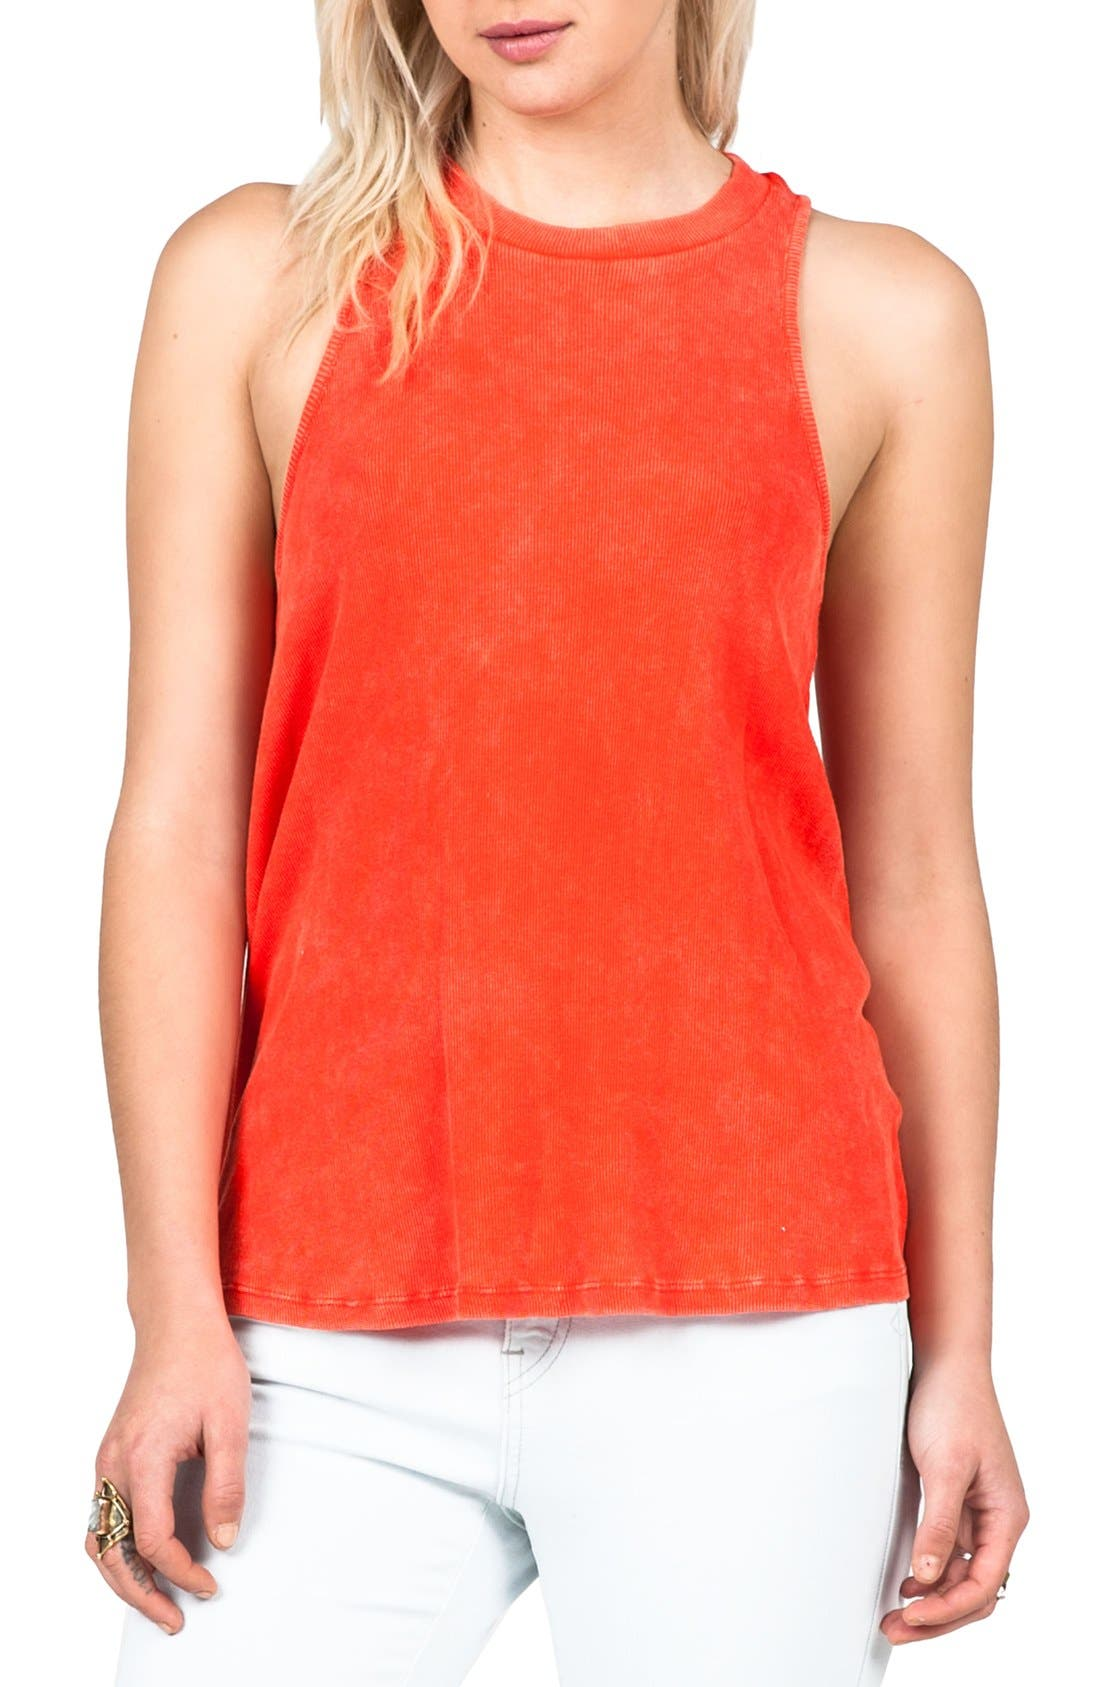 Alternate Image 1 Selected - Volcom 'Cover Your Basics' Ribbed Racerback Tank